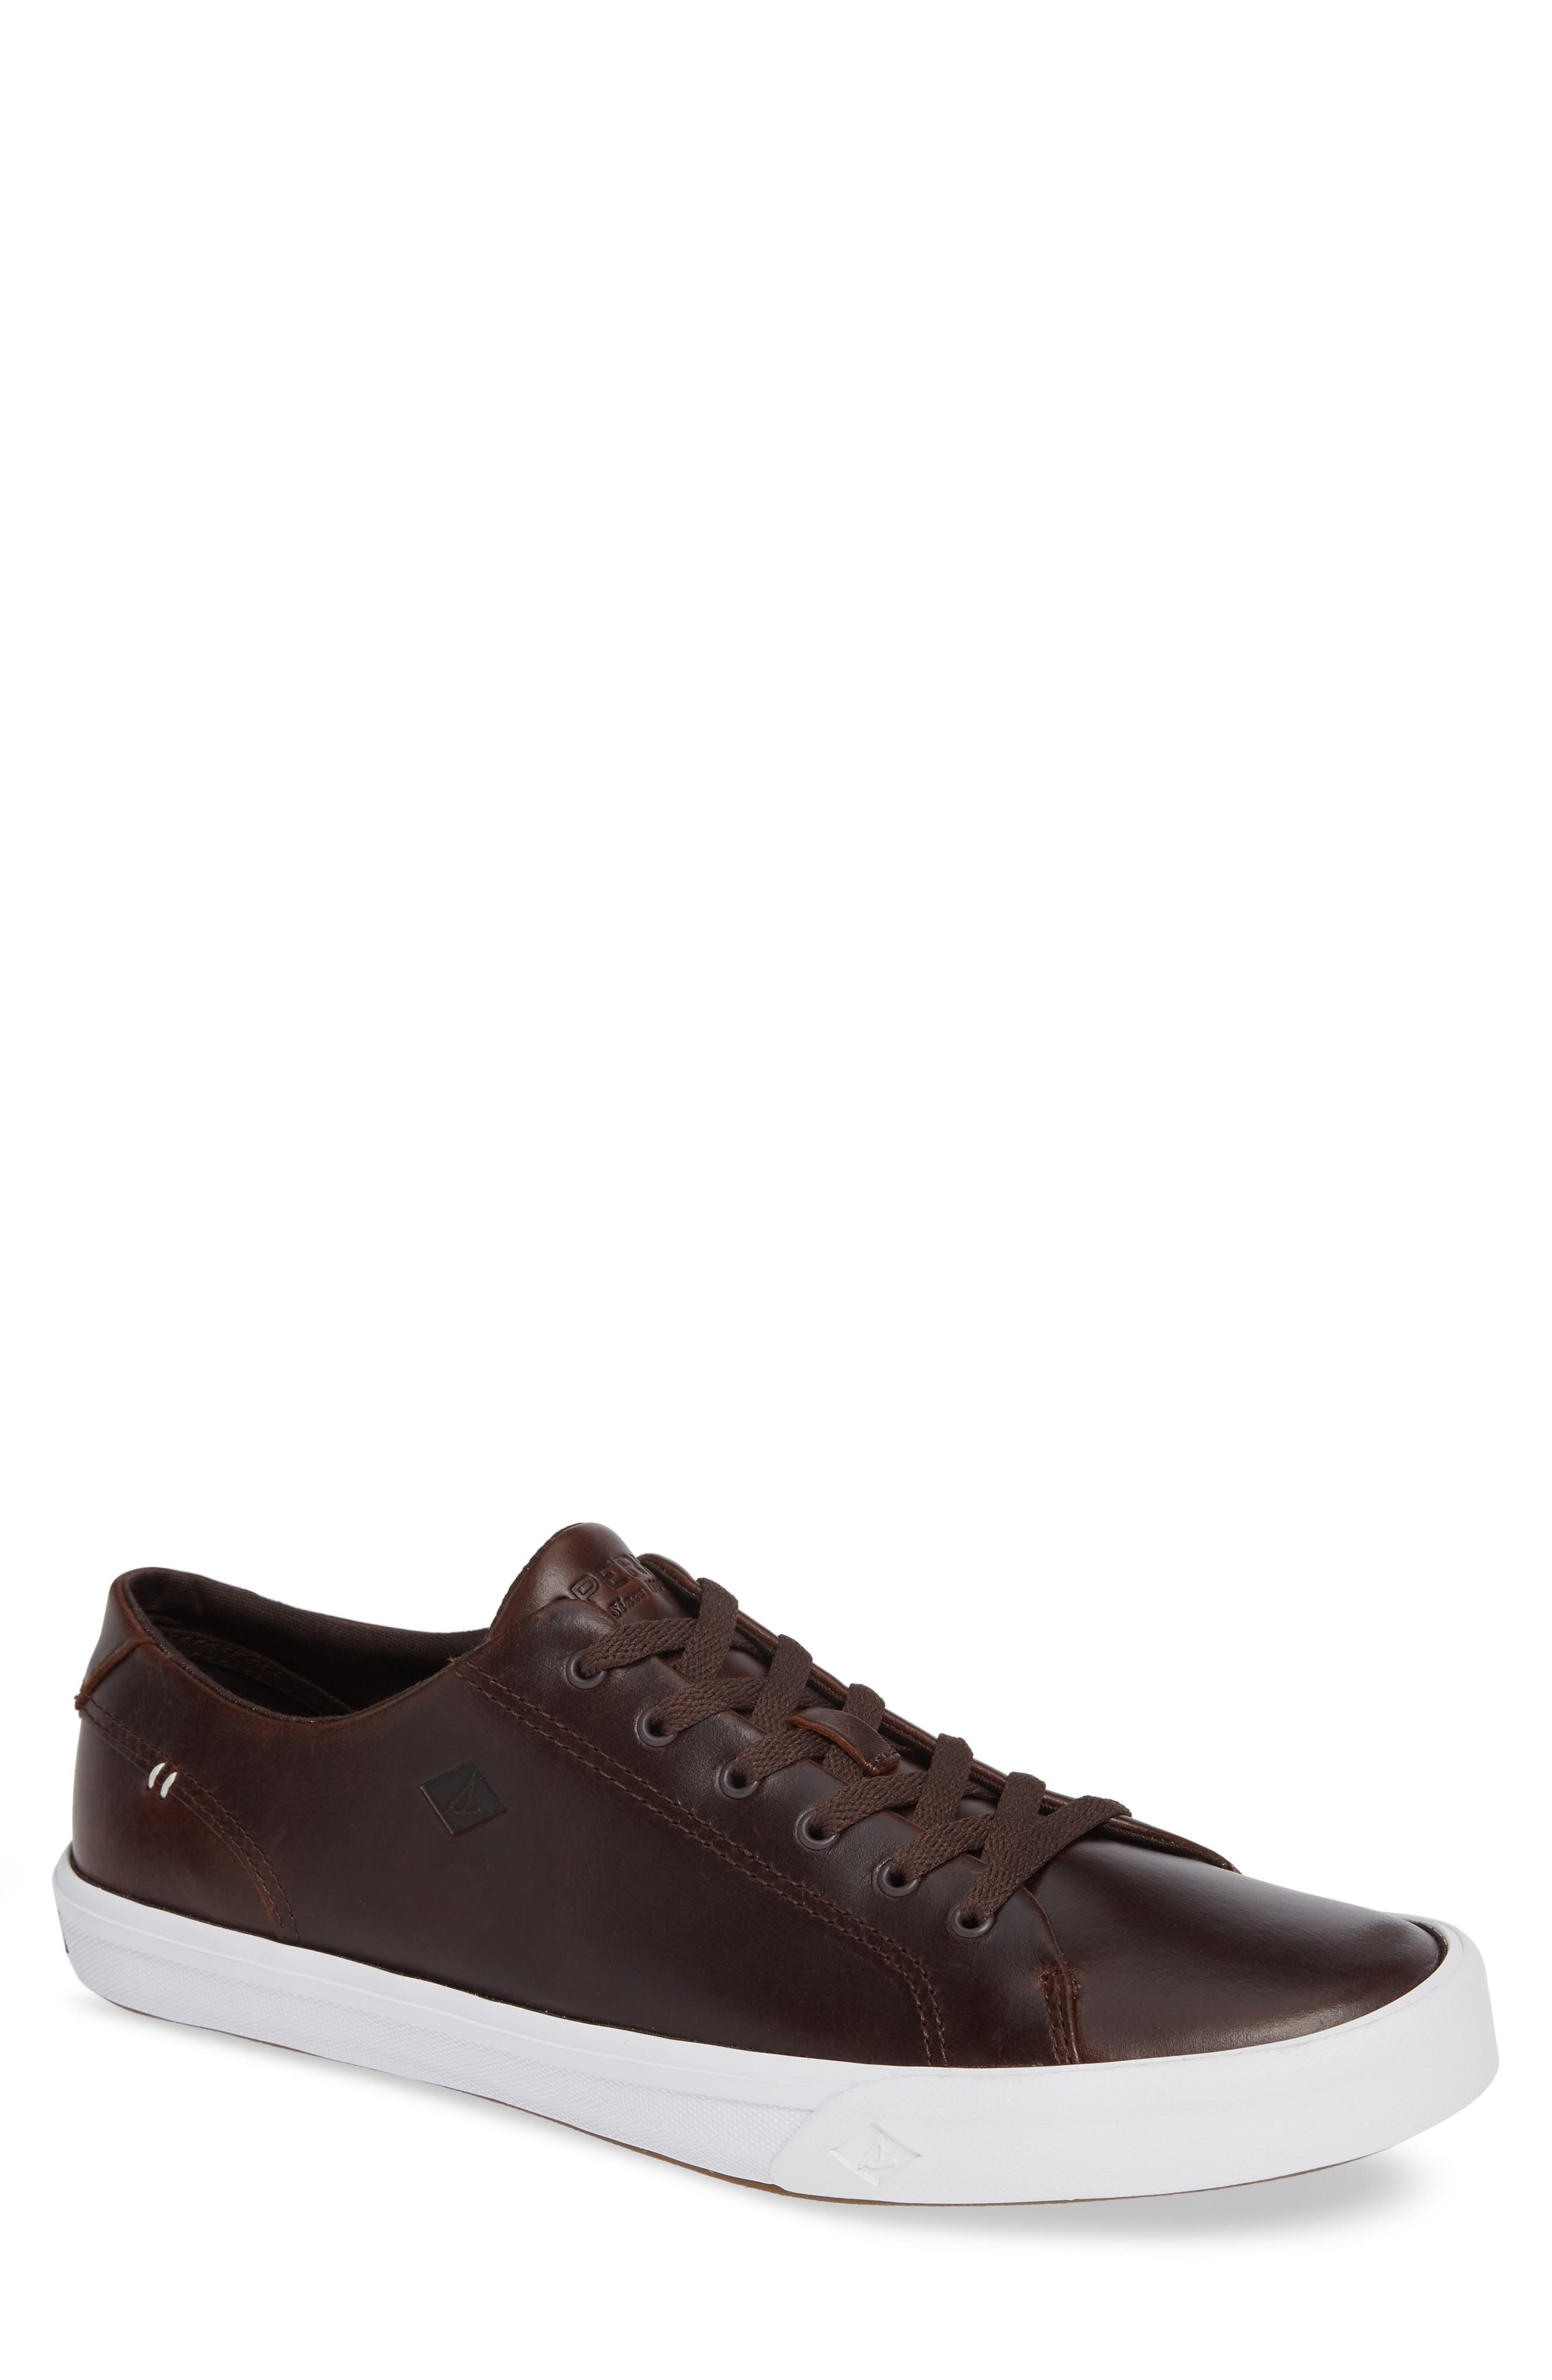 SPERRY, Striper II Sneaker, Main thumbnail 1, color, AMARETTO LEATHER